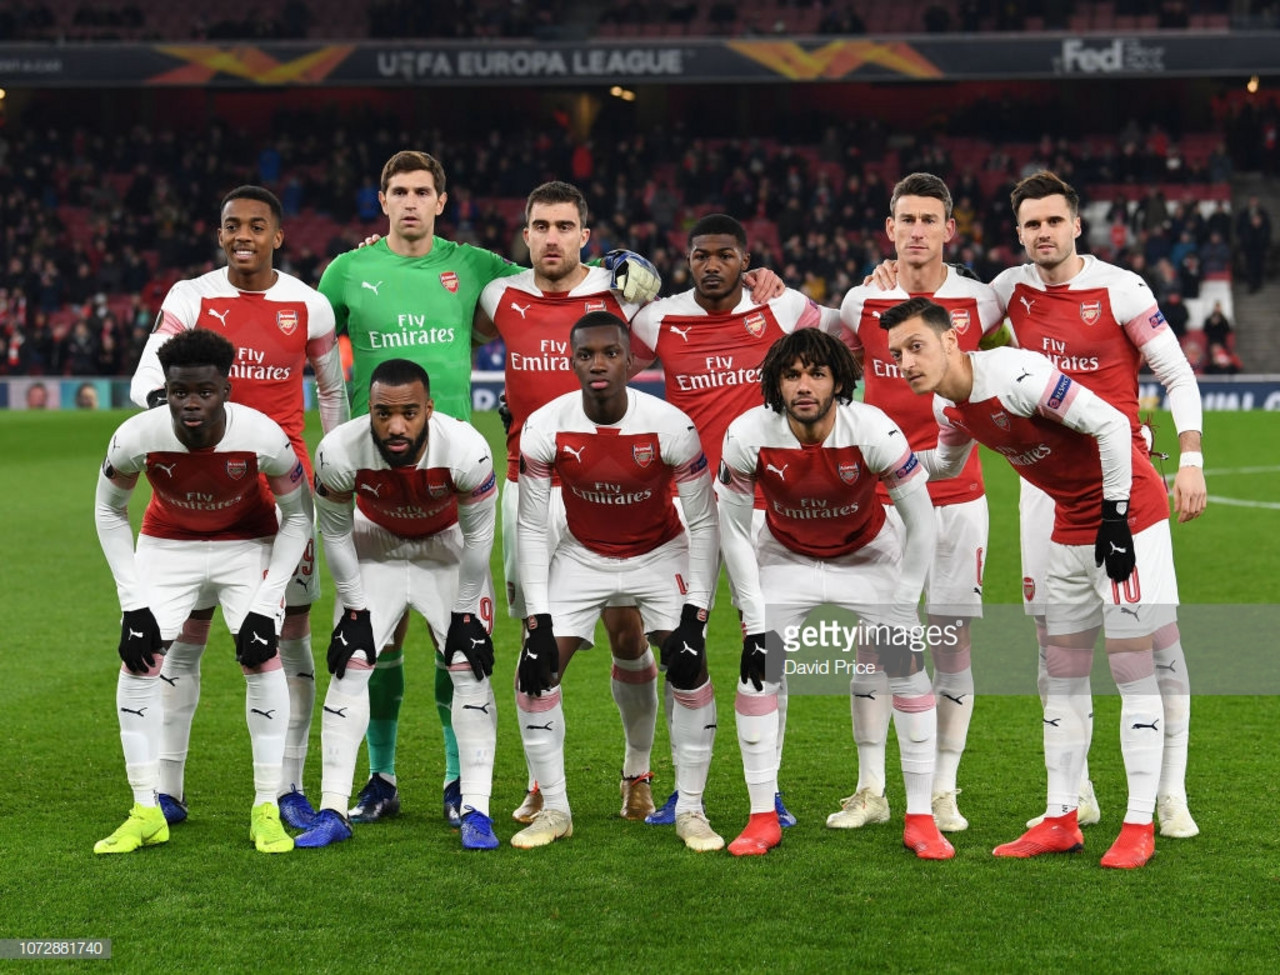 Arsenal to play BATE Borisov in Europa League round of 32